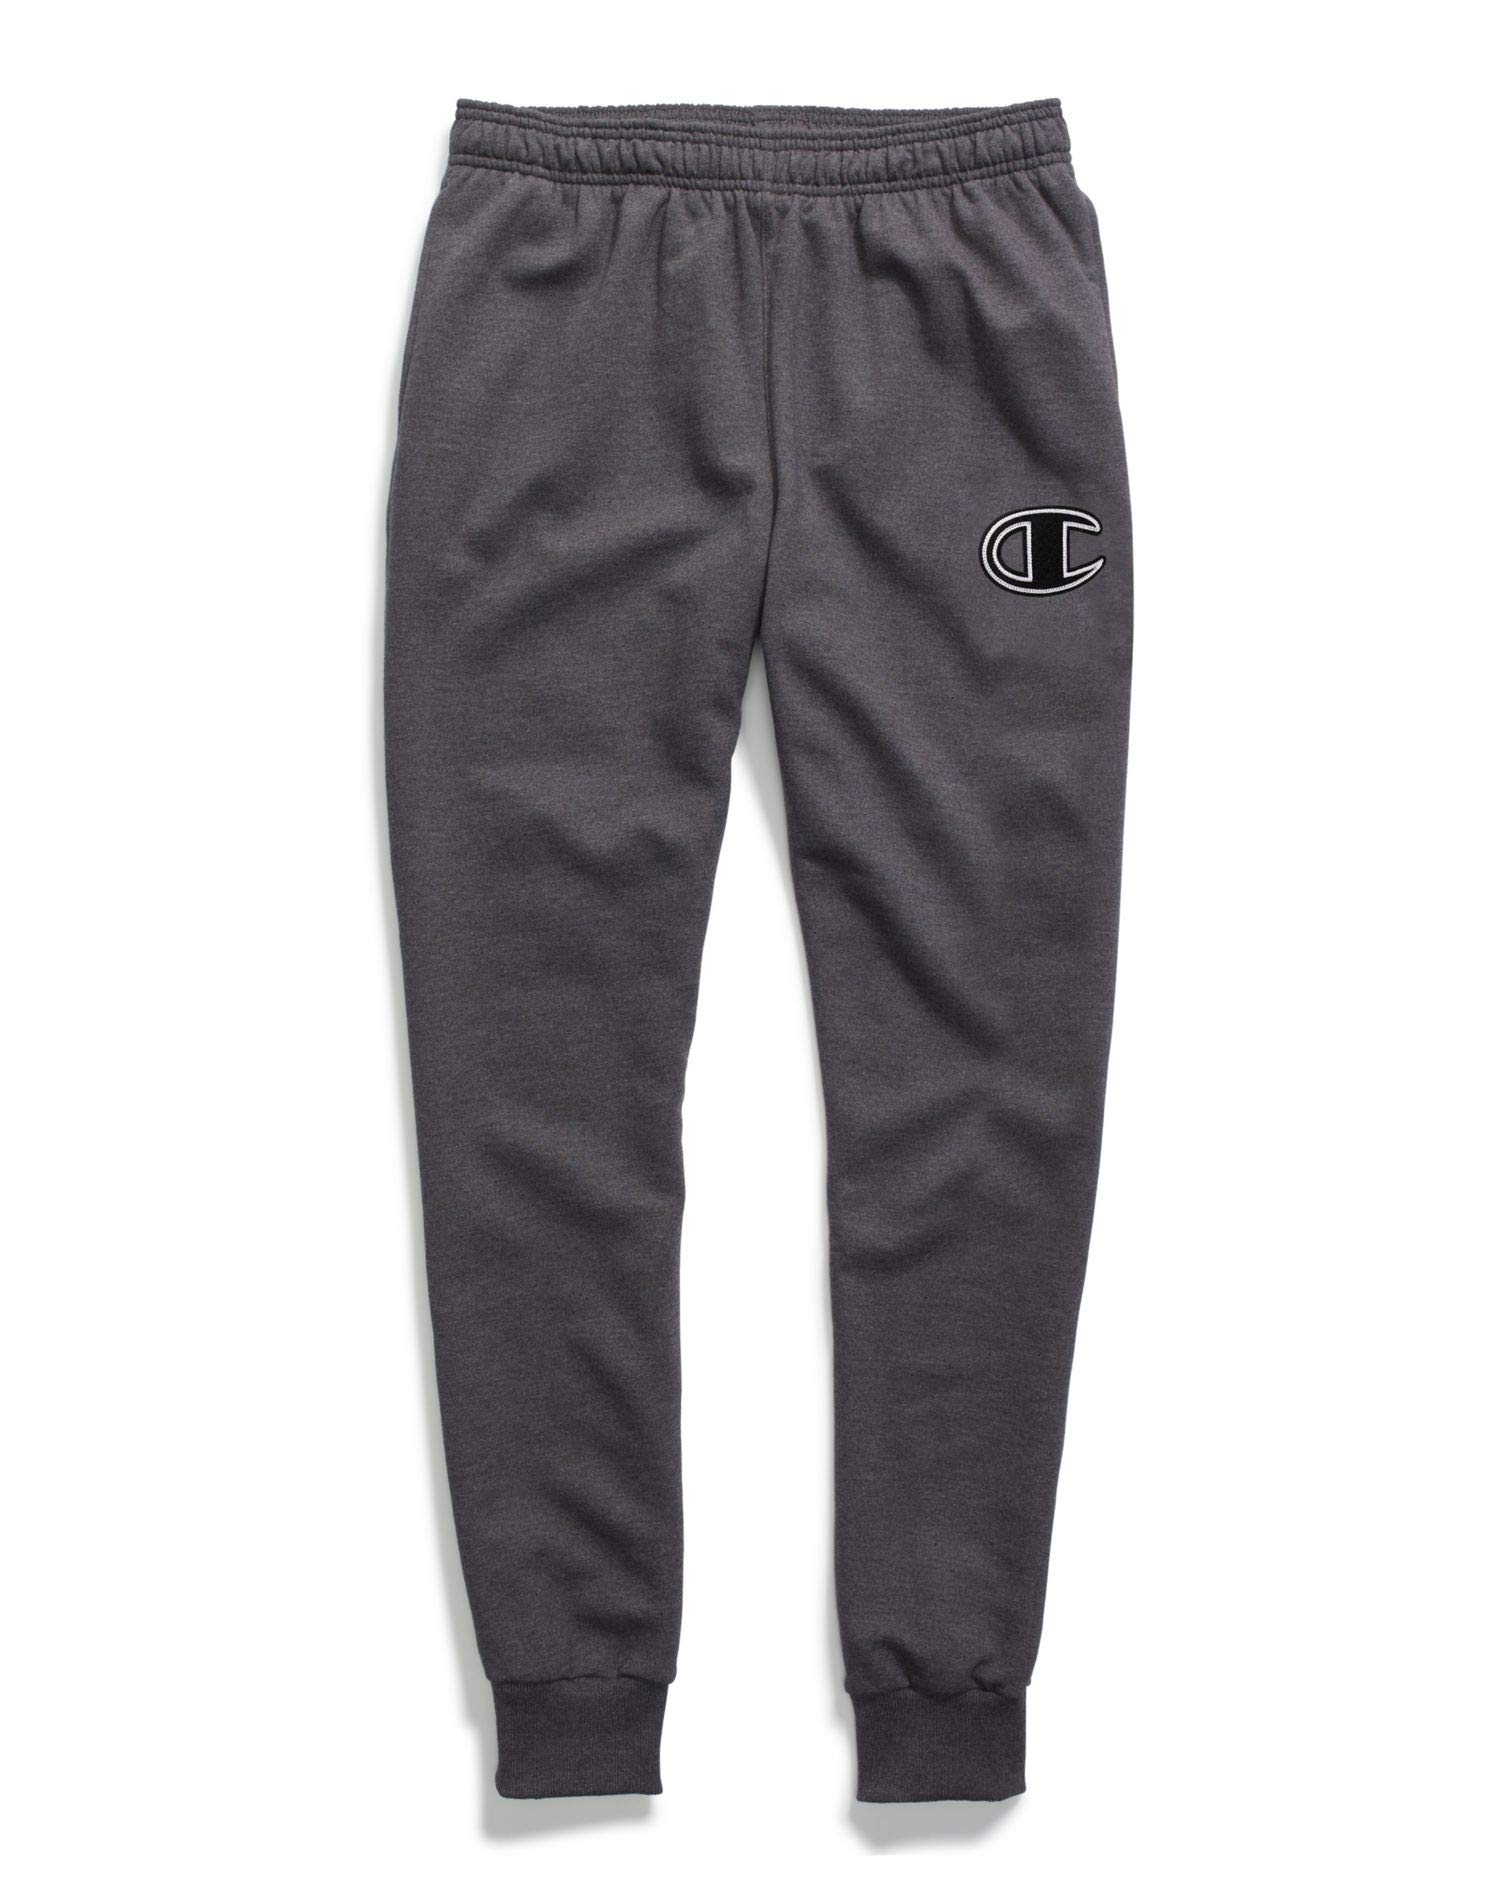 Champion Men's Powerblend Fleece Joggers, C Logo With White Chainstitch by Champion